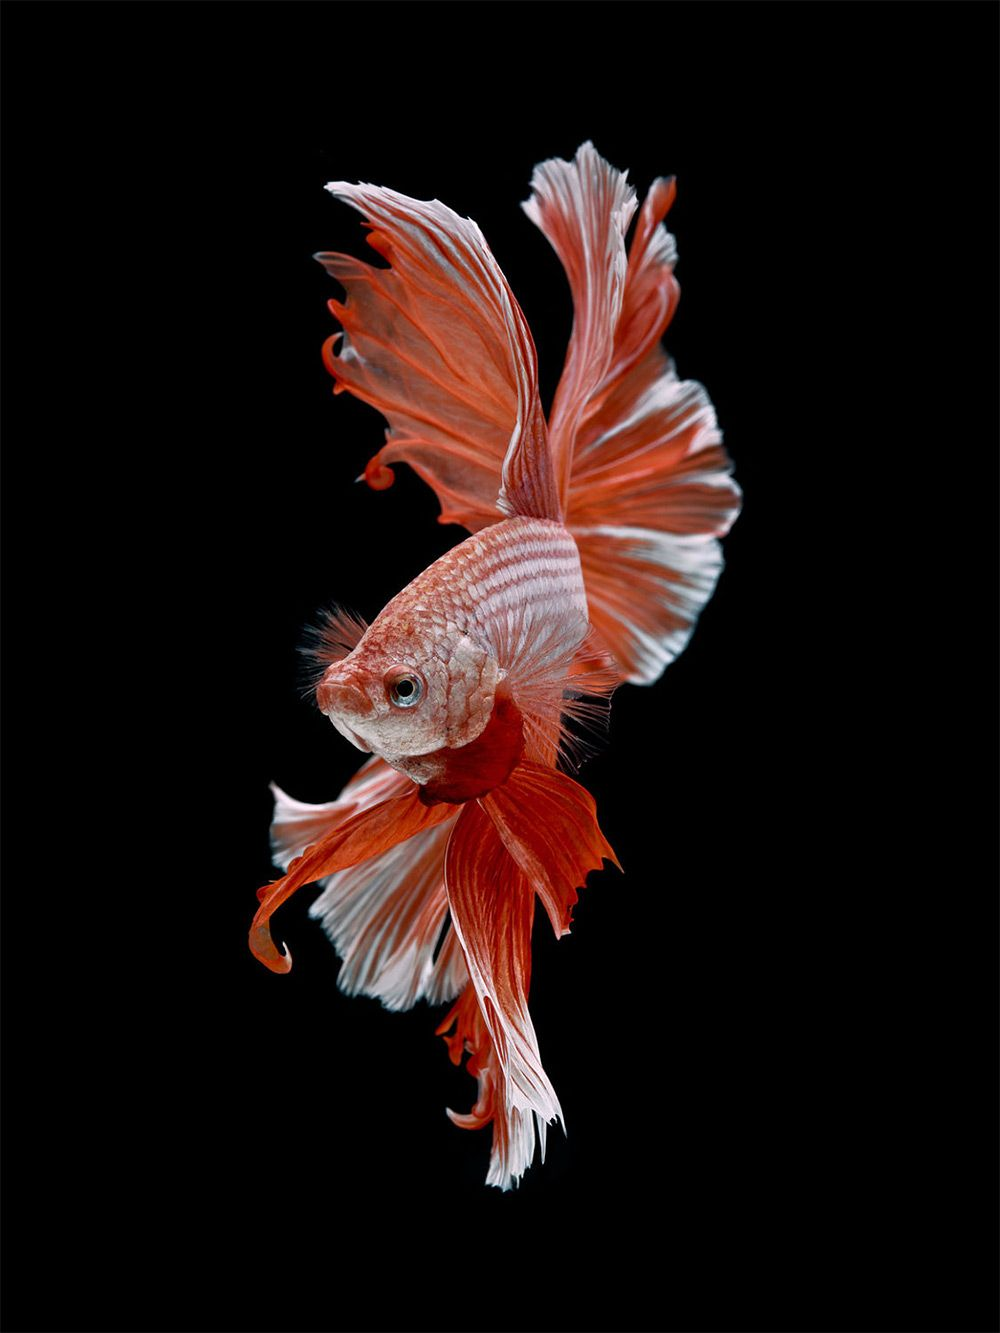 Dramatic Portraits of Pet Fish Swimming with Personality | Pinterest ...